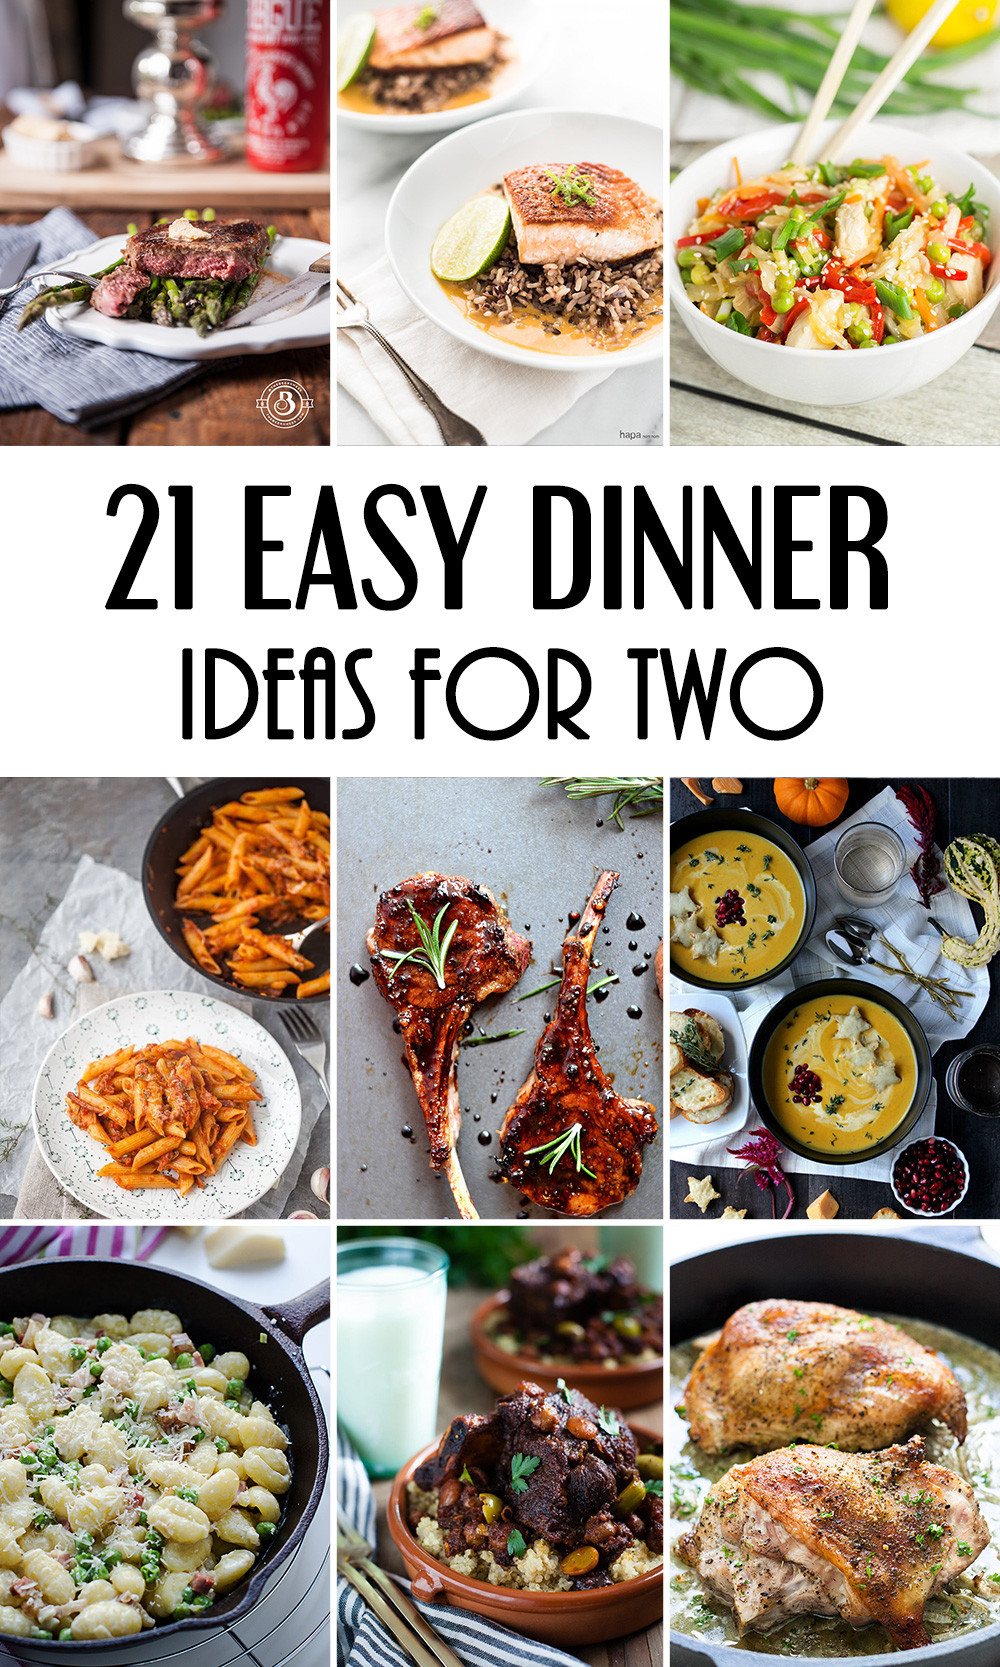 Simple Dinner Ideas  21 Easy Dinner Ideas For Two That Will Impress Your Loved e